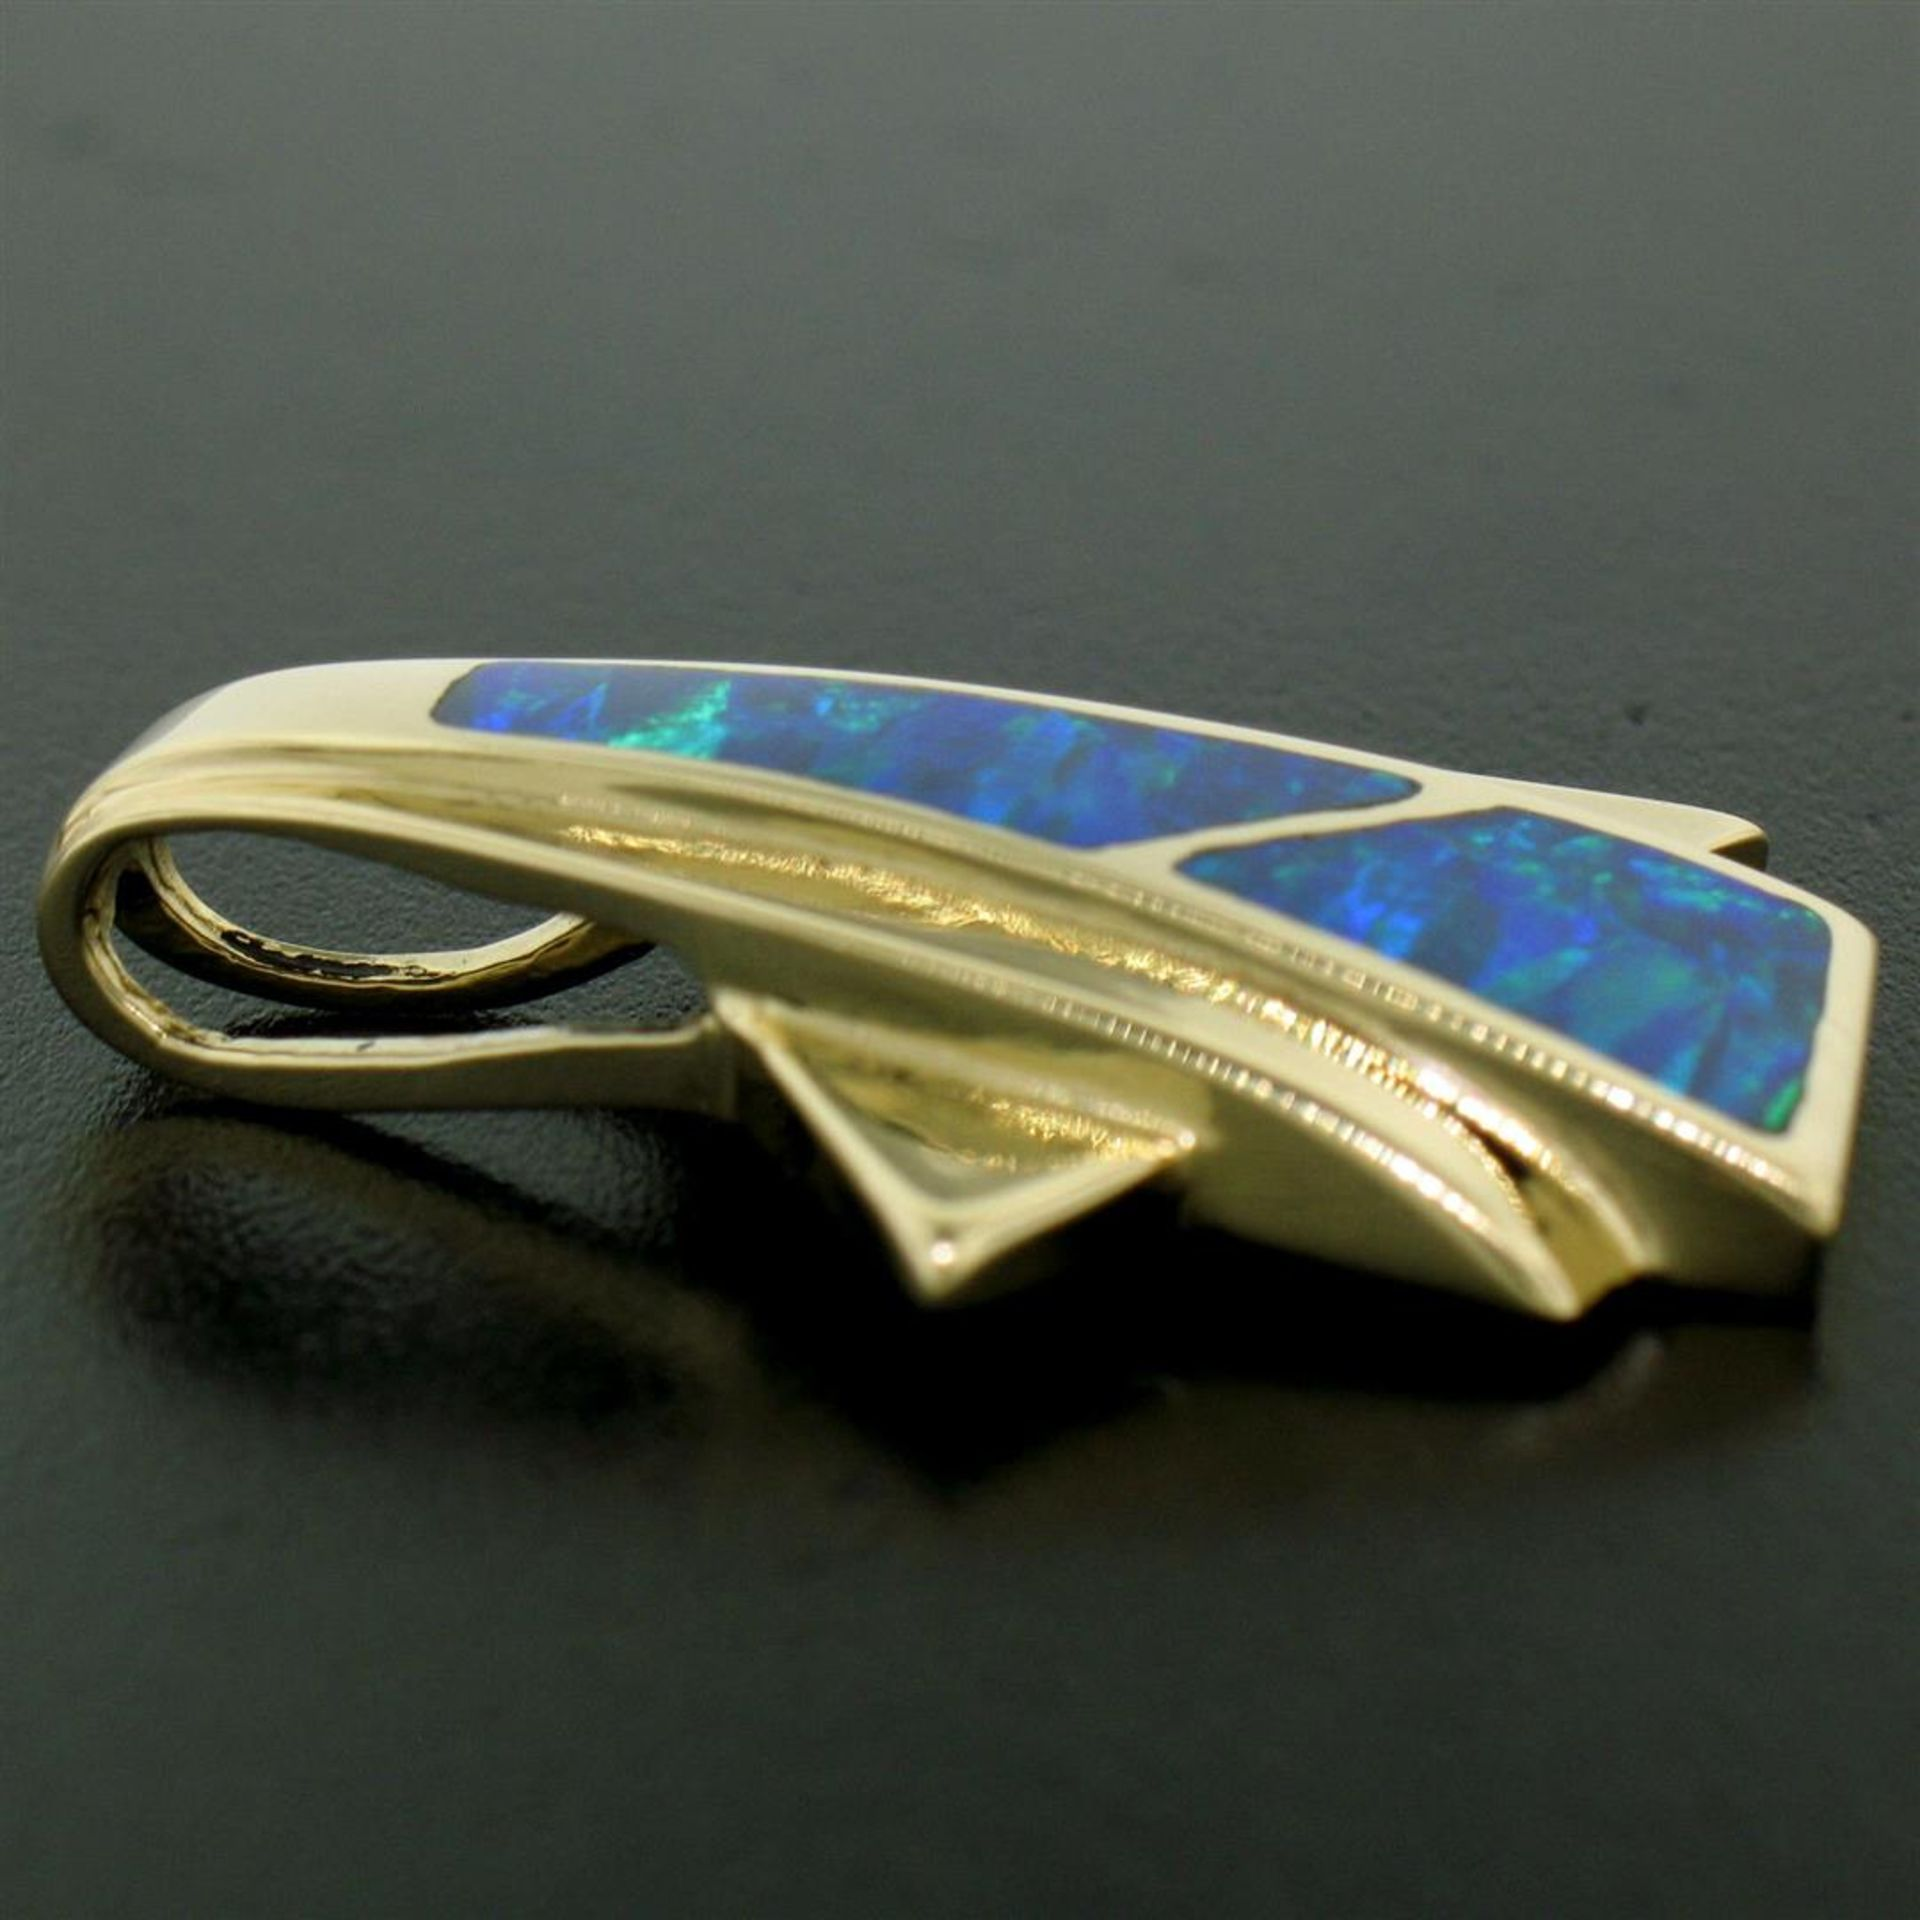 14k Yellow Gold 2 Inlaid Freeform Geometric Blue & Green Boulder Opal Pendant - Image 5 of 7